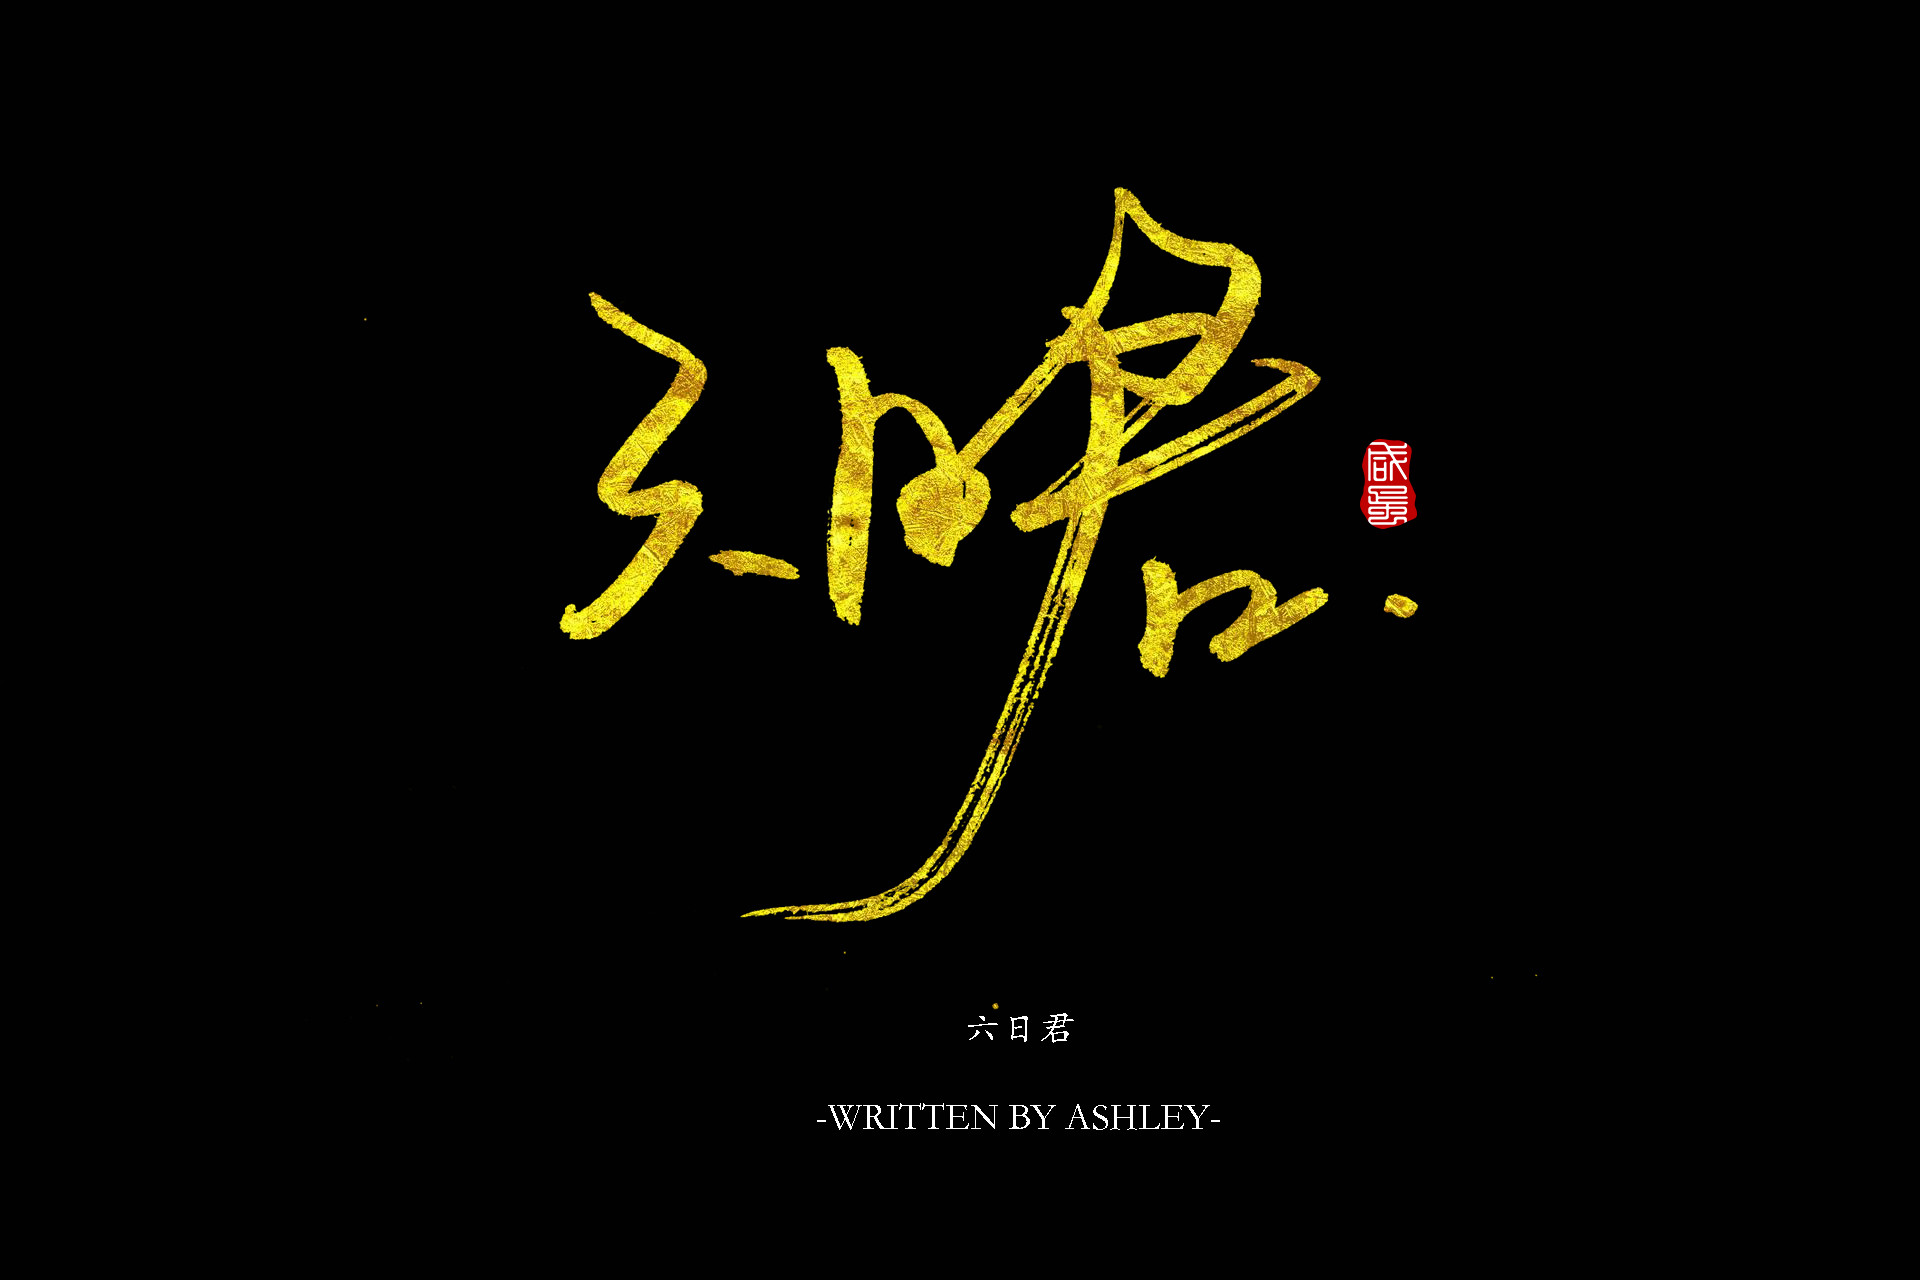 chinesefontdesign.com 2017 08 29 12 54 02 531881 4P Smart handwriting Chinese font calligraphy style